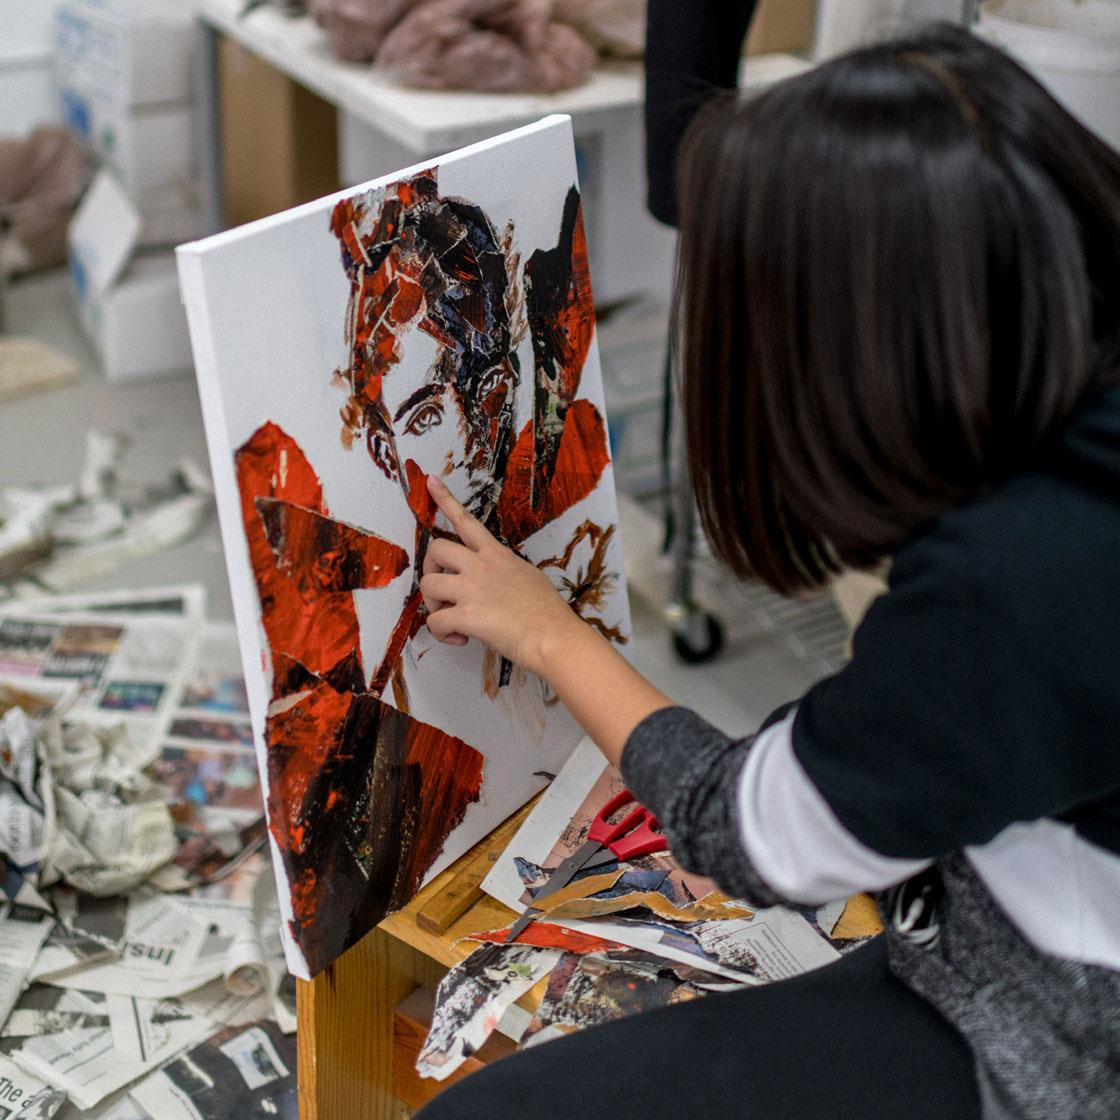 A young person working on a collage portrait art piece